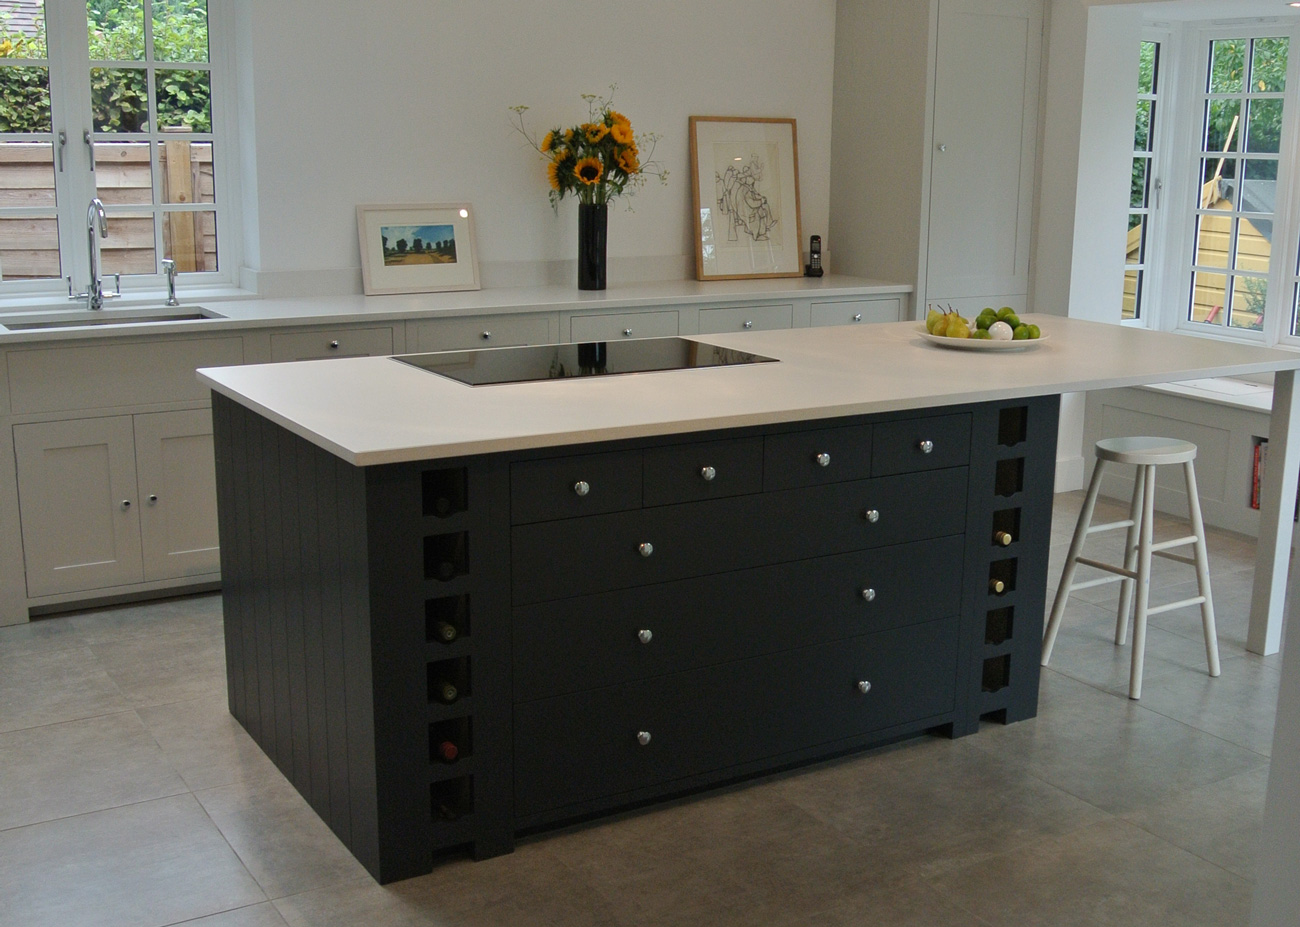 gbbo-kitchen-island